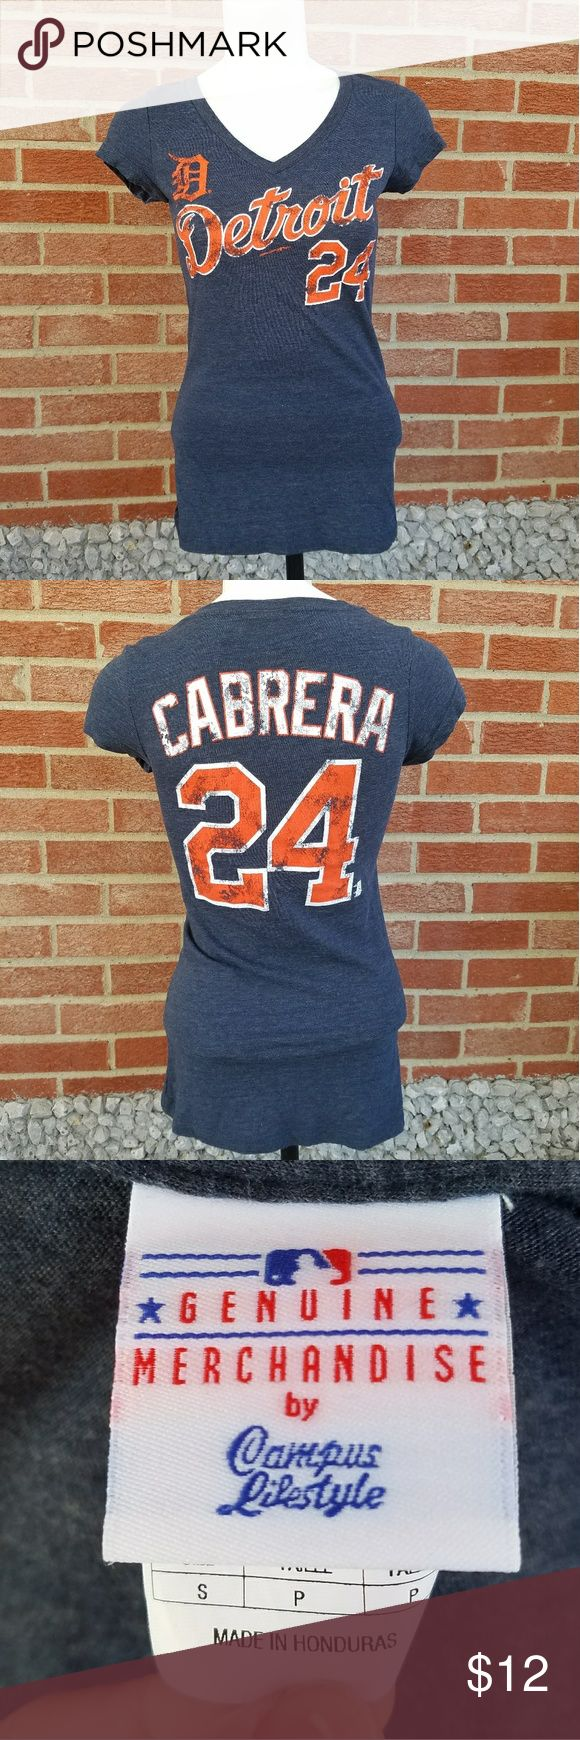 Detroit Tigers Bathroom Accessories Sale Detroit Tigers Cabrera Mlb Tee  Size Small Size Small Mlb